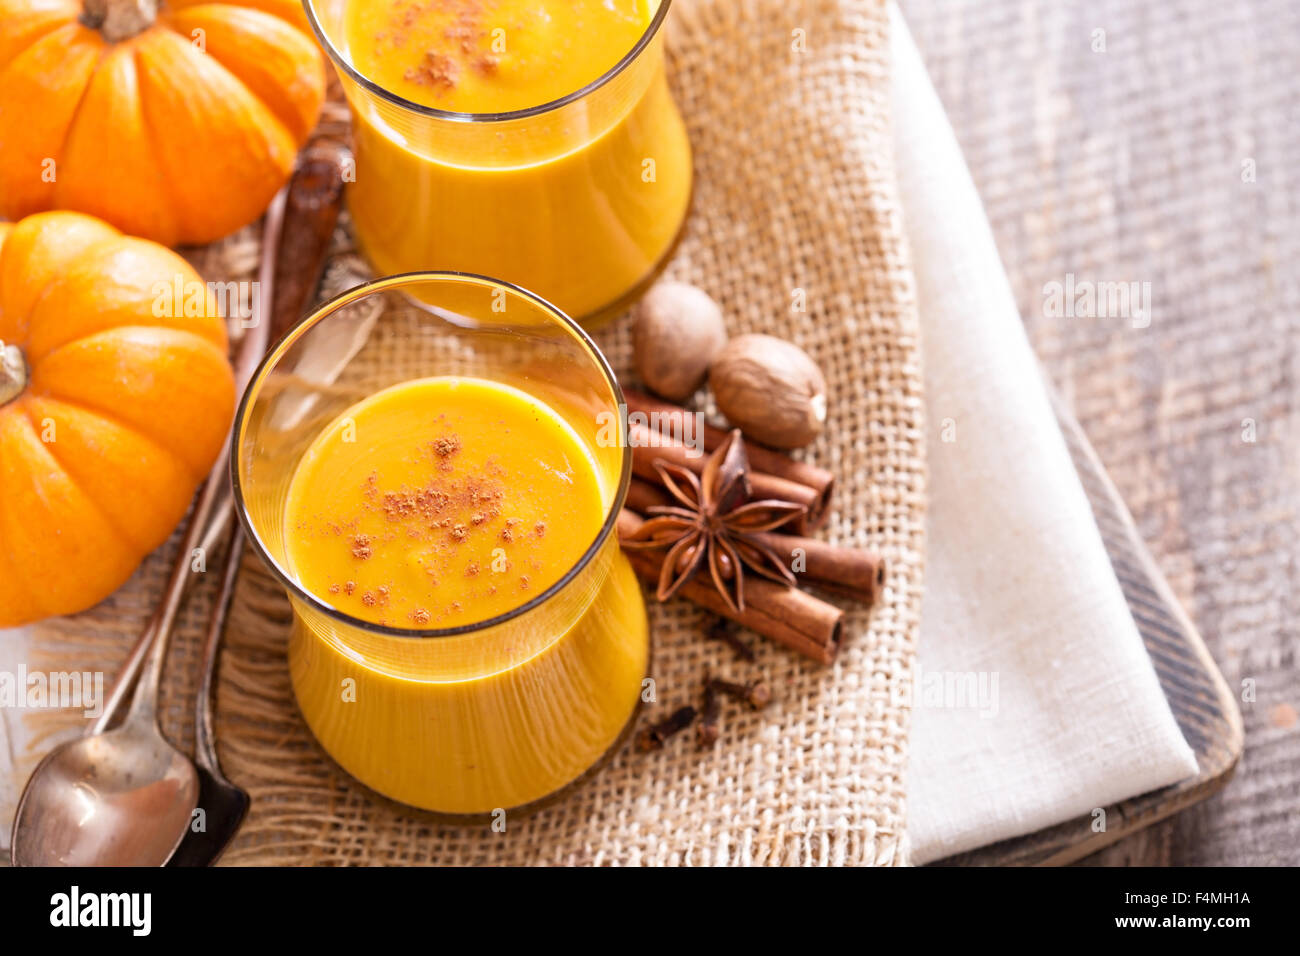 Pumpkin and orange spiced fall drink with cinnamon - Stock Image